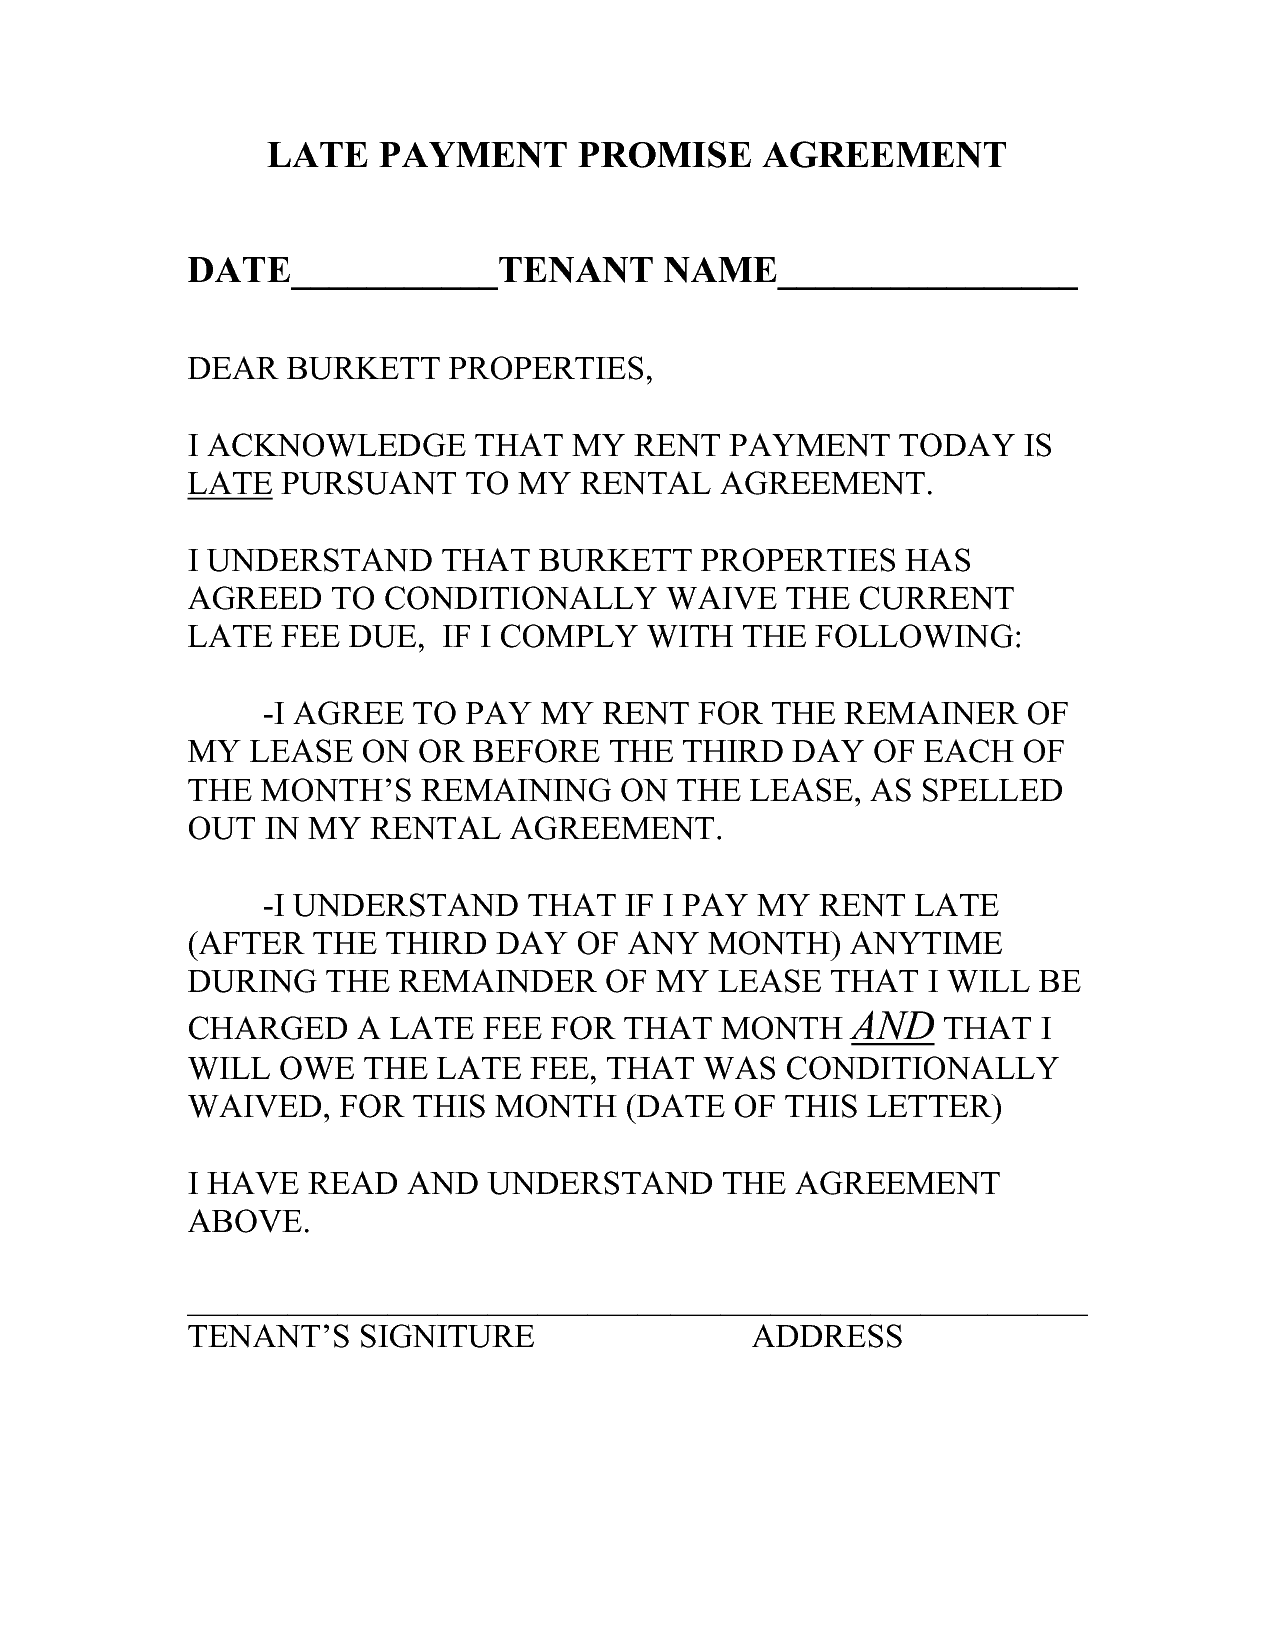 17 images about landlord documents – Promise to Pay Contract Template